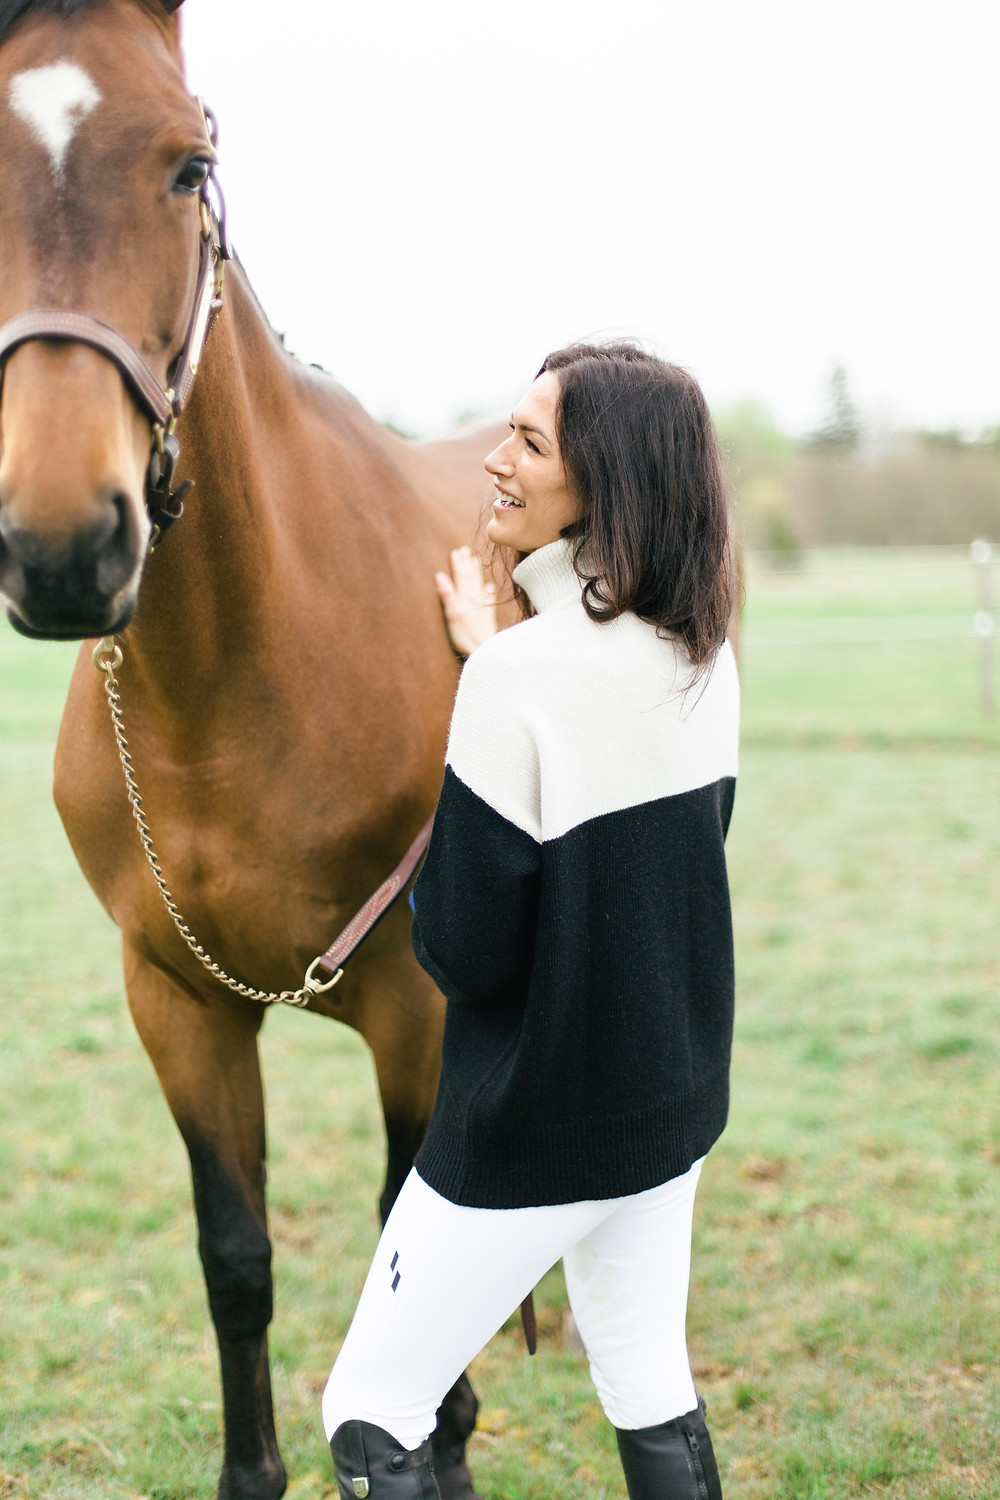 Equestrian photography inspiration and tips from Marie Roy Photography